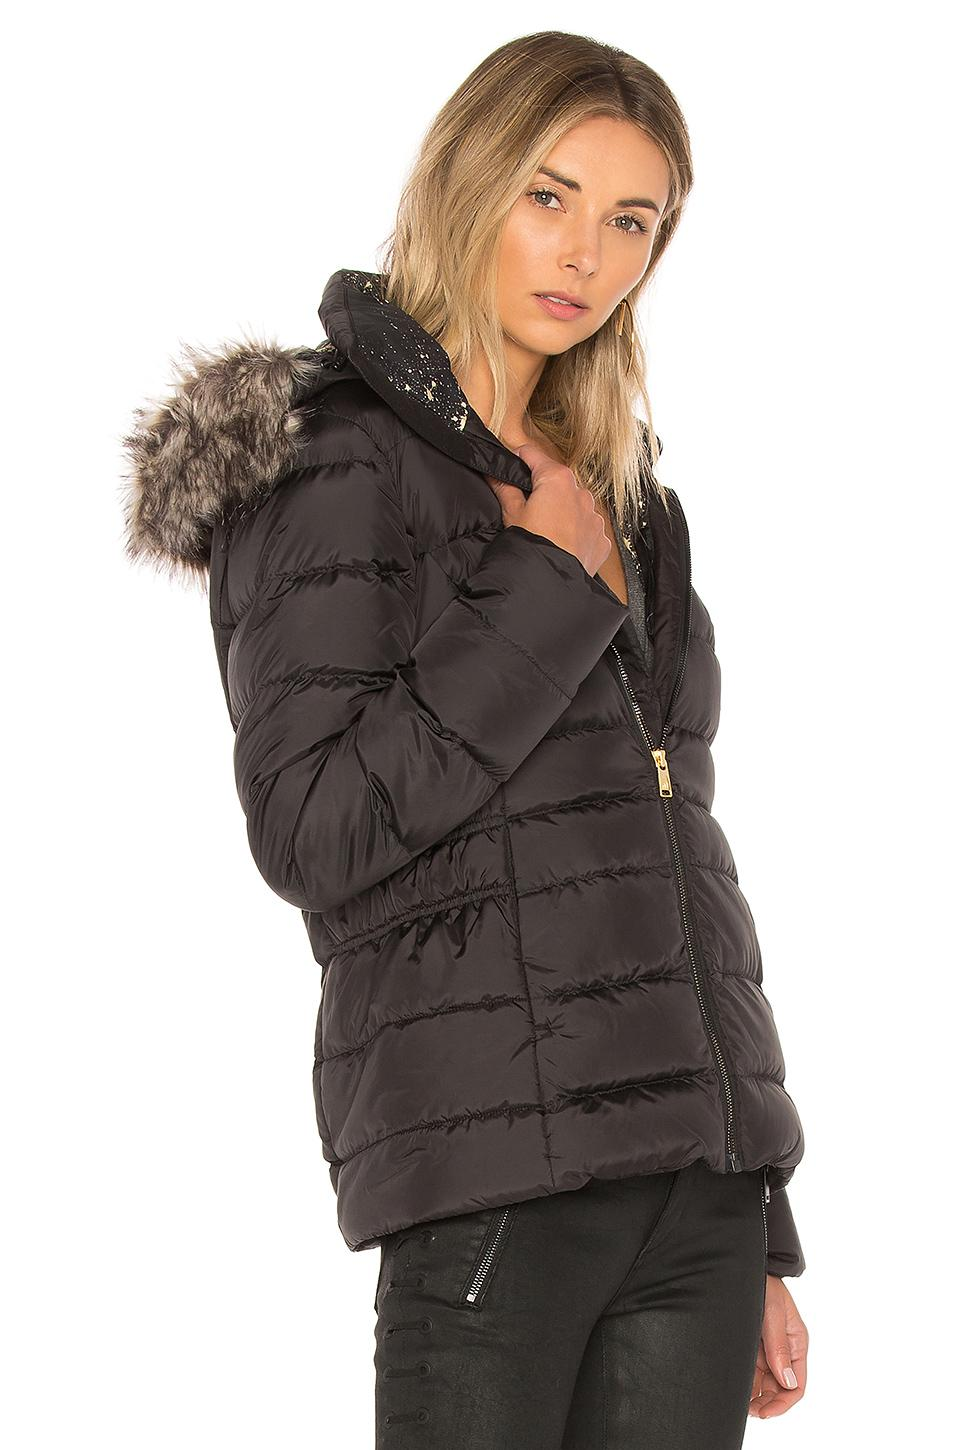 70d6f2c4e The North Face Black Gotham Jacket Ii With Faux Fur Trim